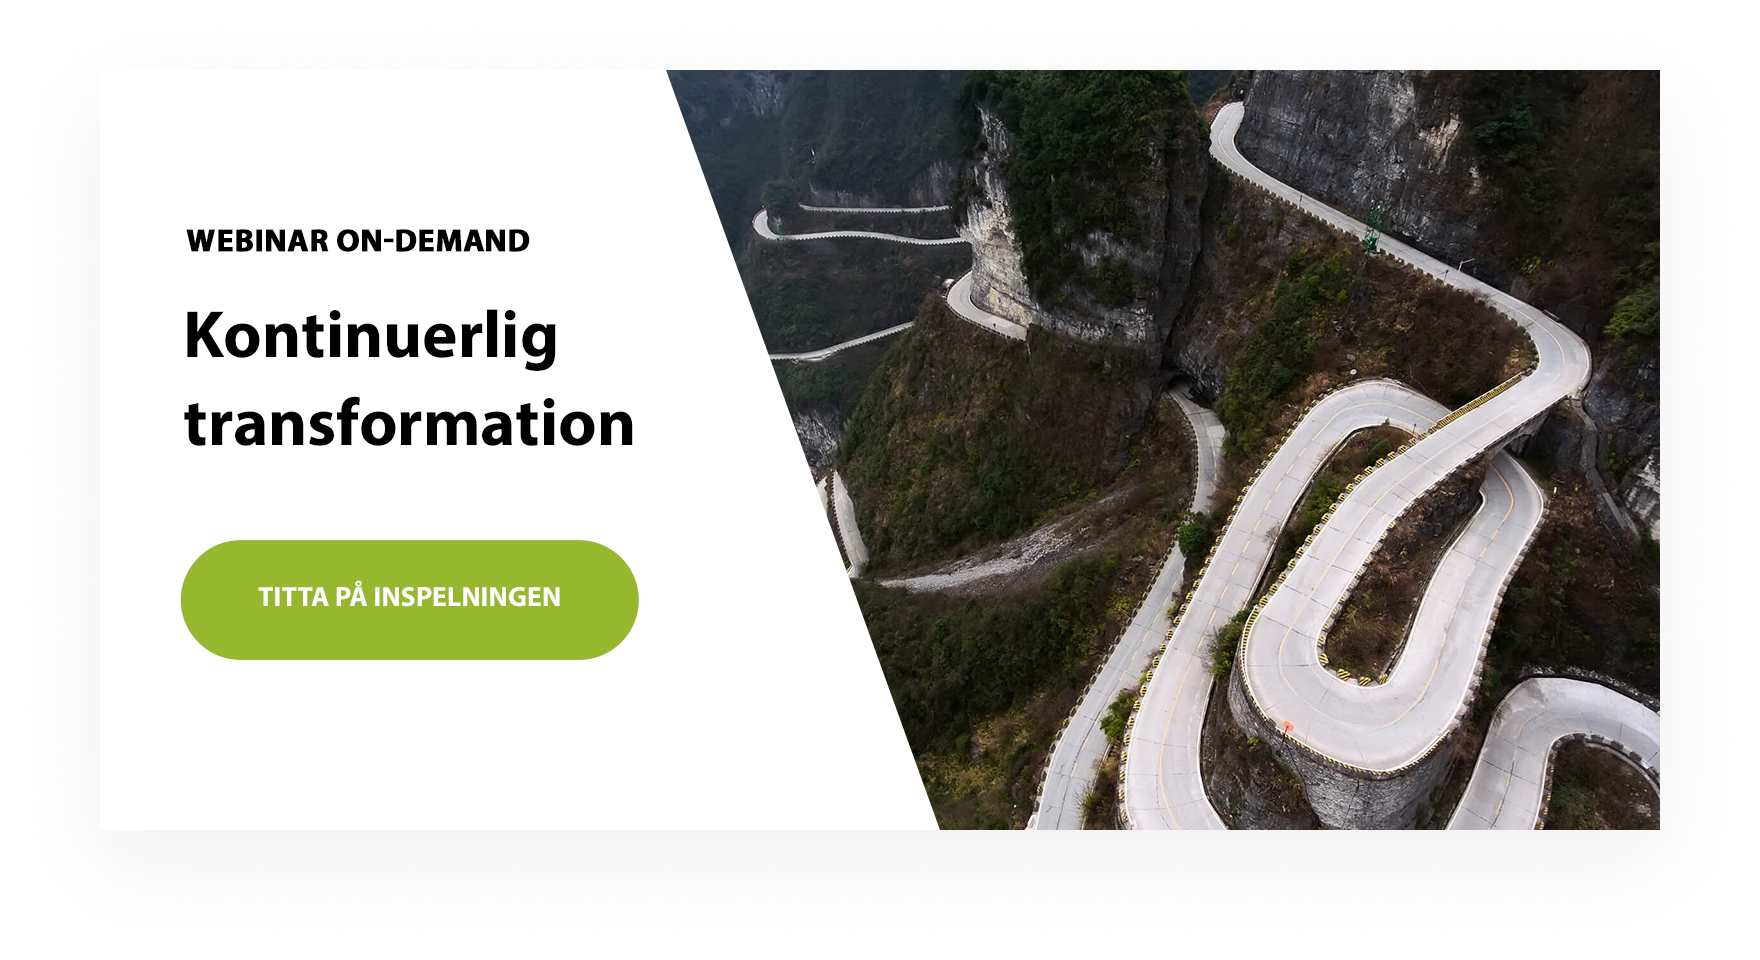 webinar on-demand: kontinuerlig transformation